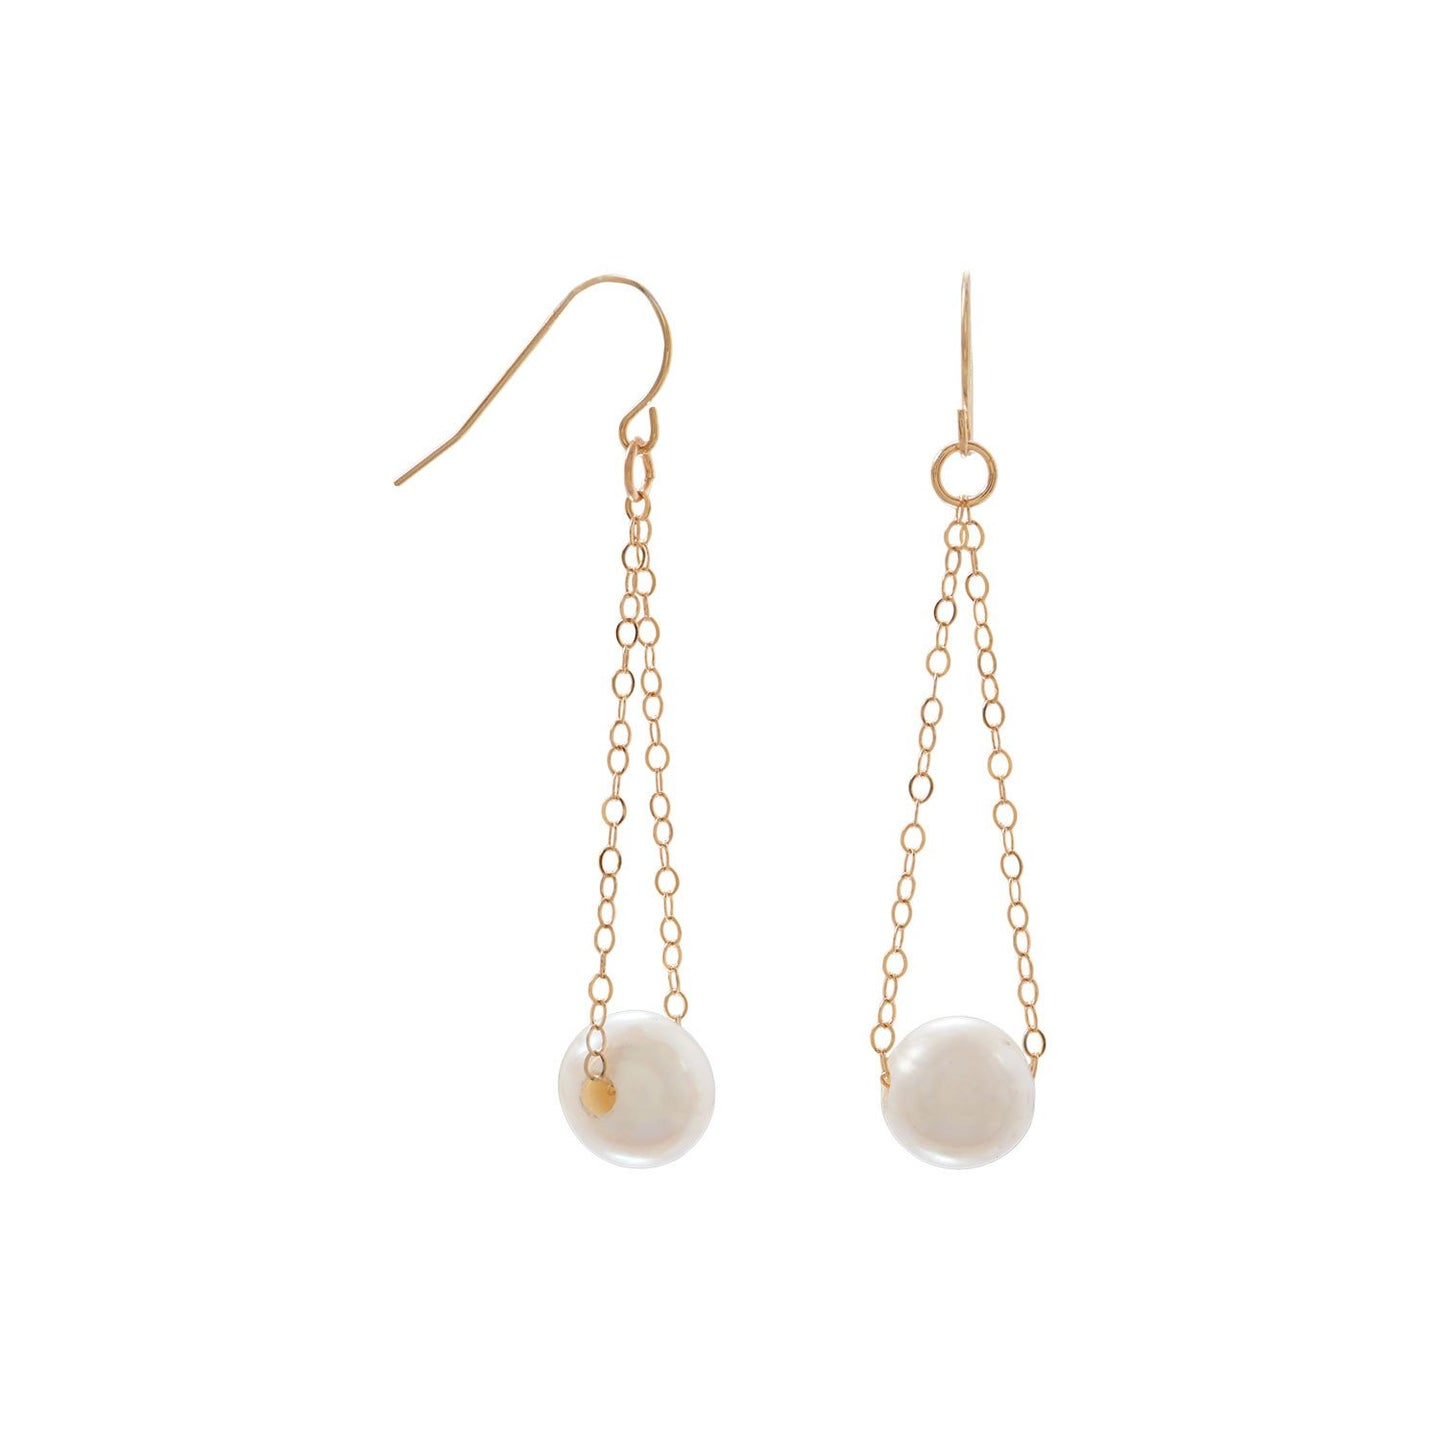 Gold French Wire Earrings with Floating Cultured Freshwater Pearl - the-southern-magnolia-too